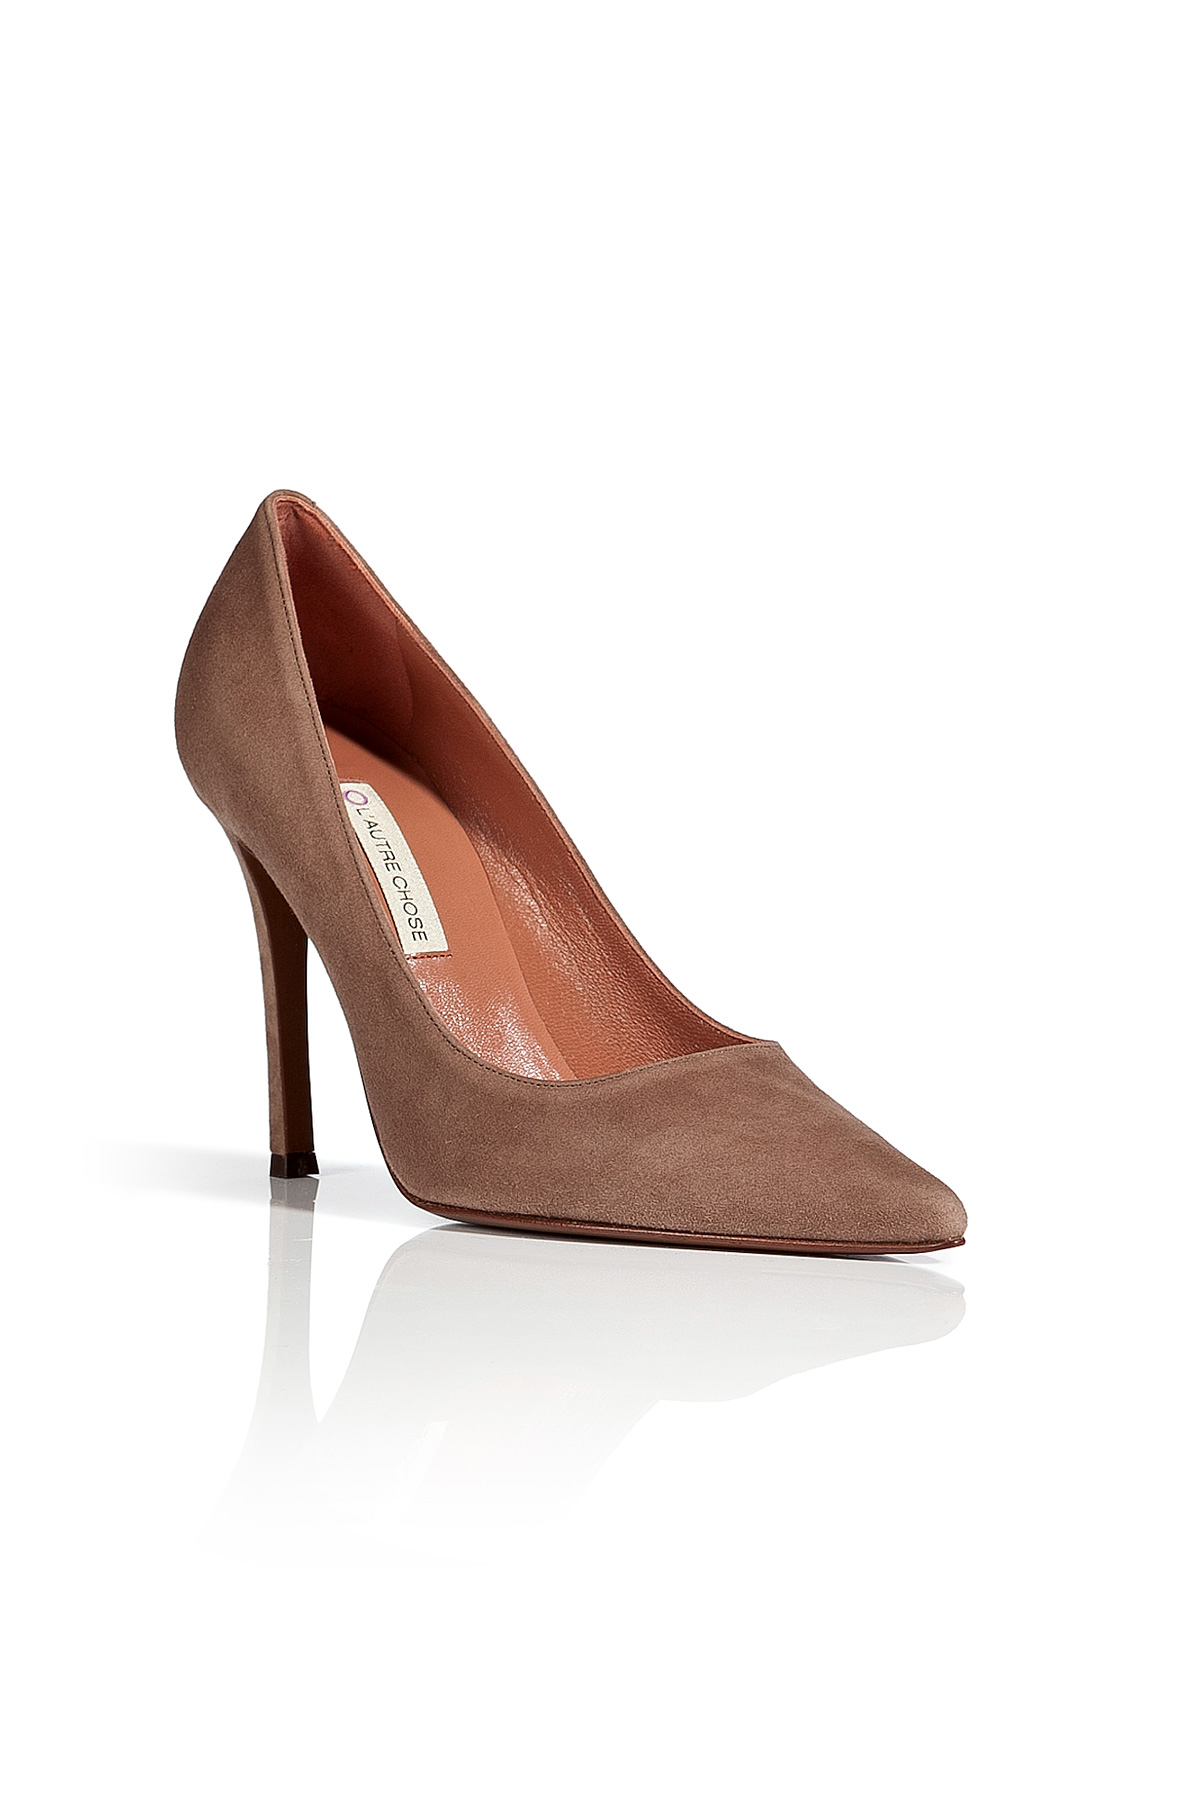 l 39 autre chose suede pointy toe pumps in beige lyst. Black Bedroom Furniture Sets. Home Design Ideas